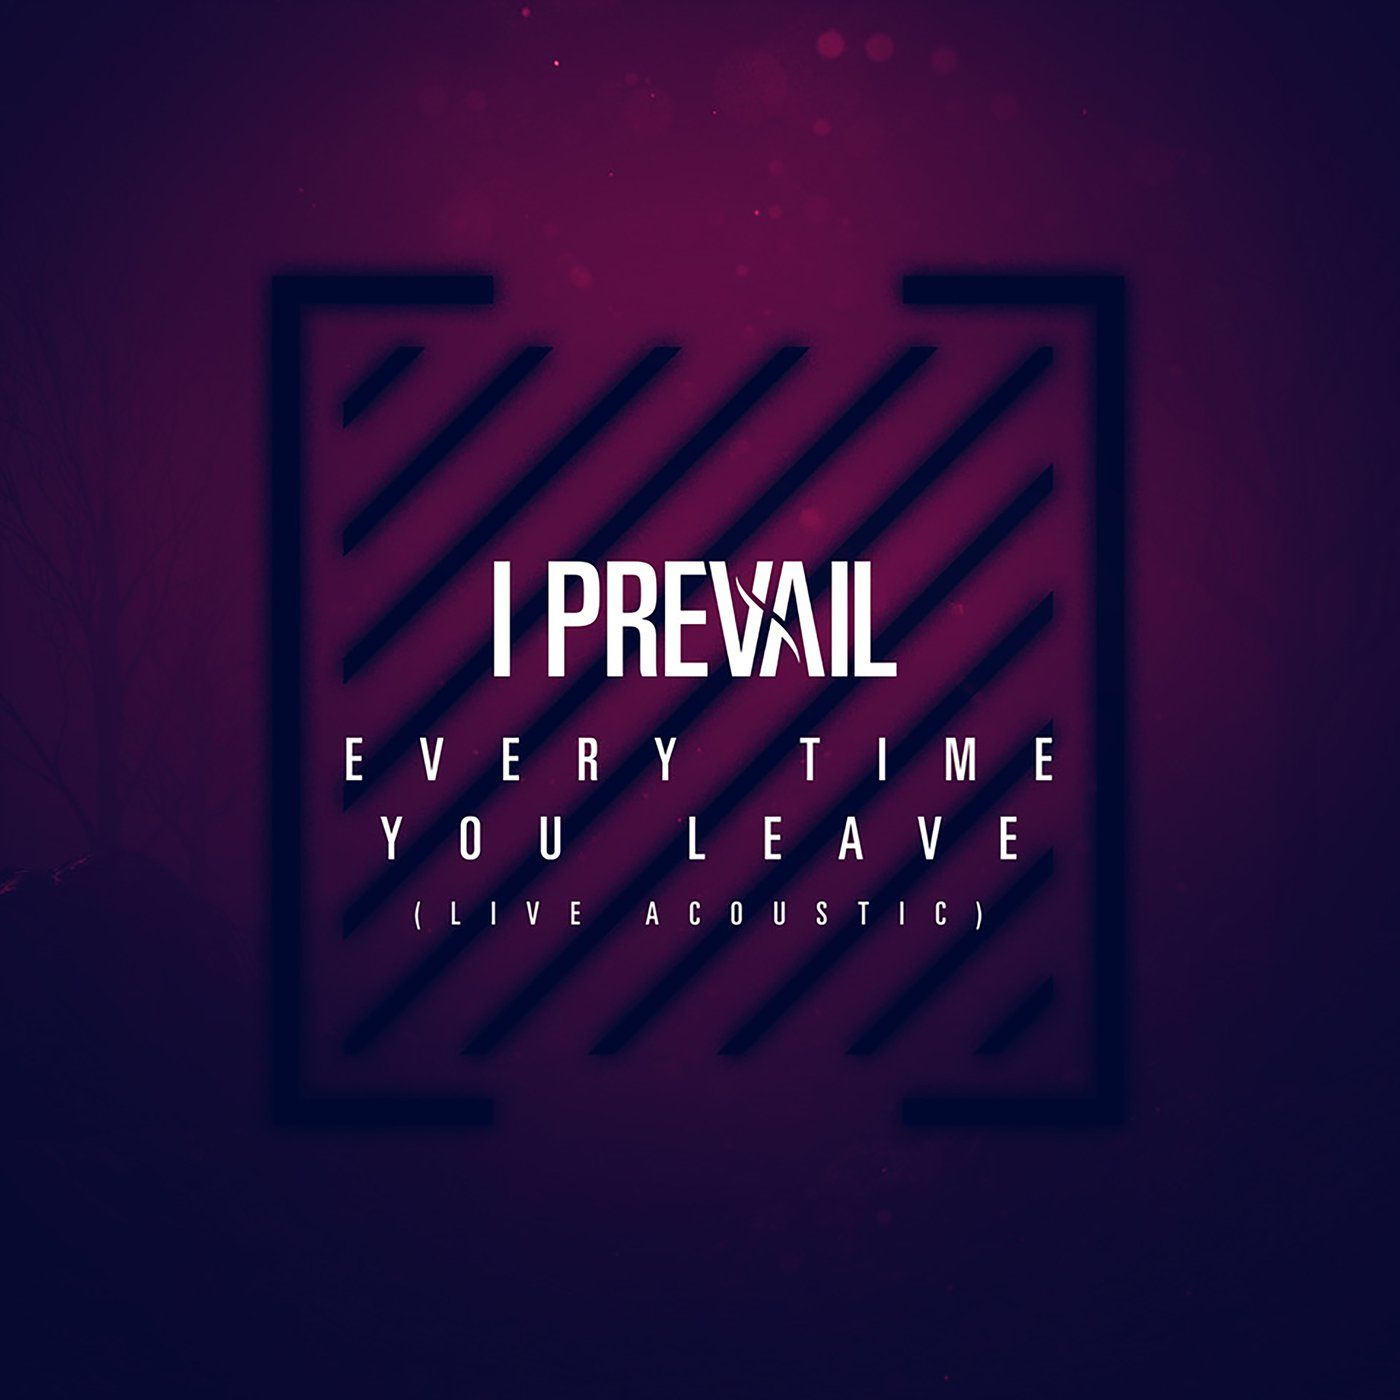 I Prevail - Every Time You Leave (Live Acoustic) [single] (2020)